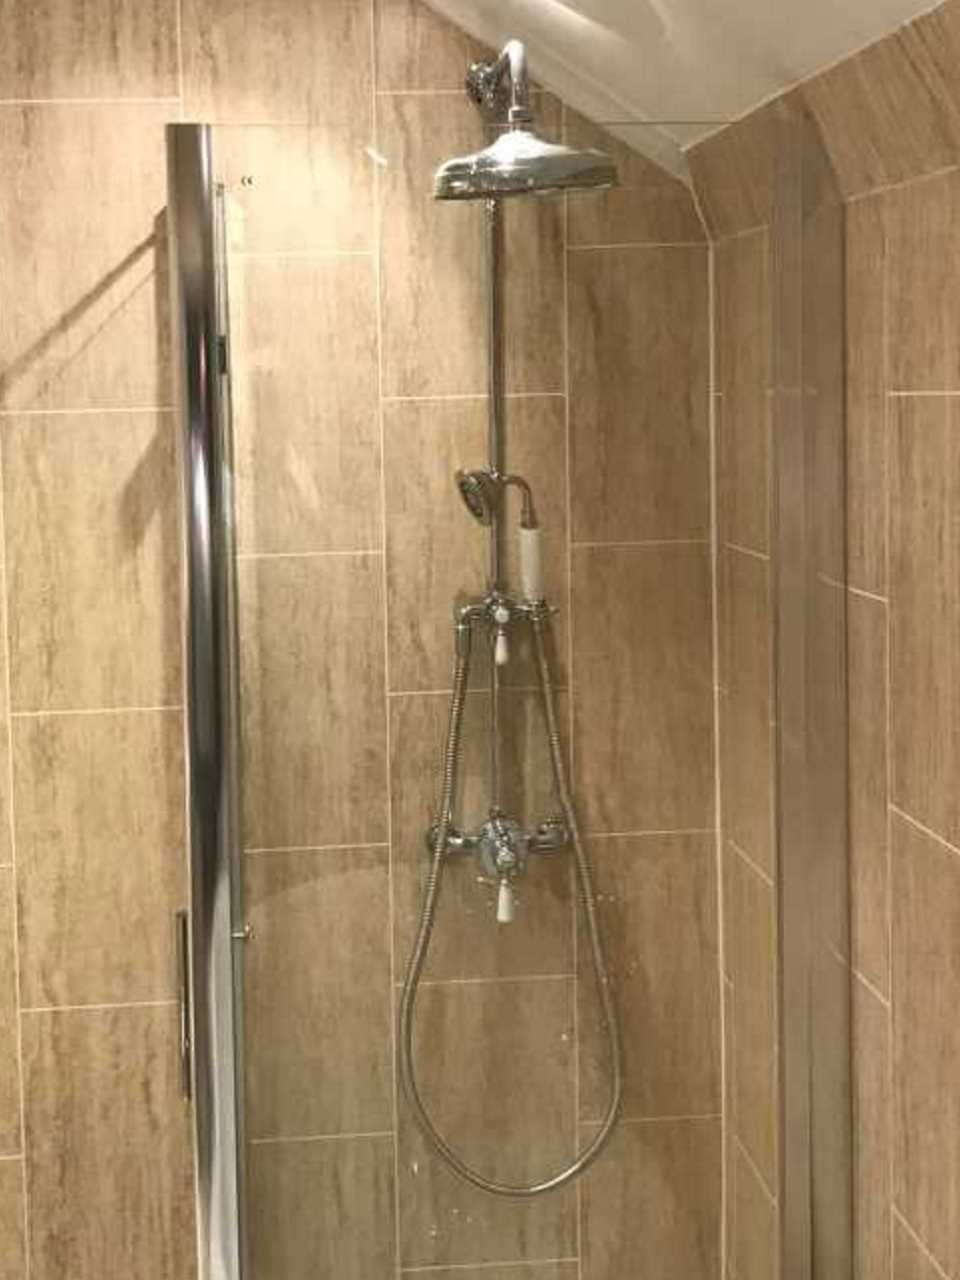 Luxury Shower Enclosure installed in bathroom Designed for All Family